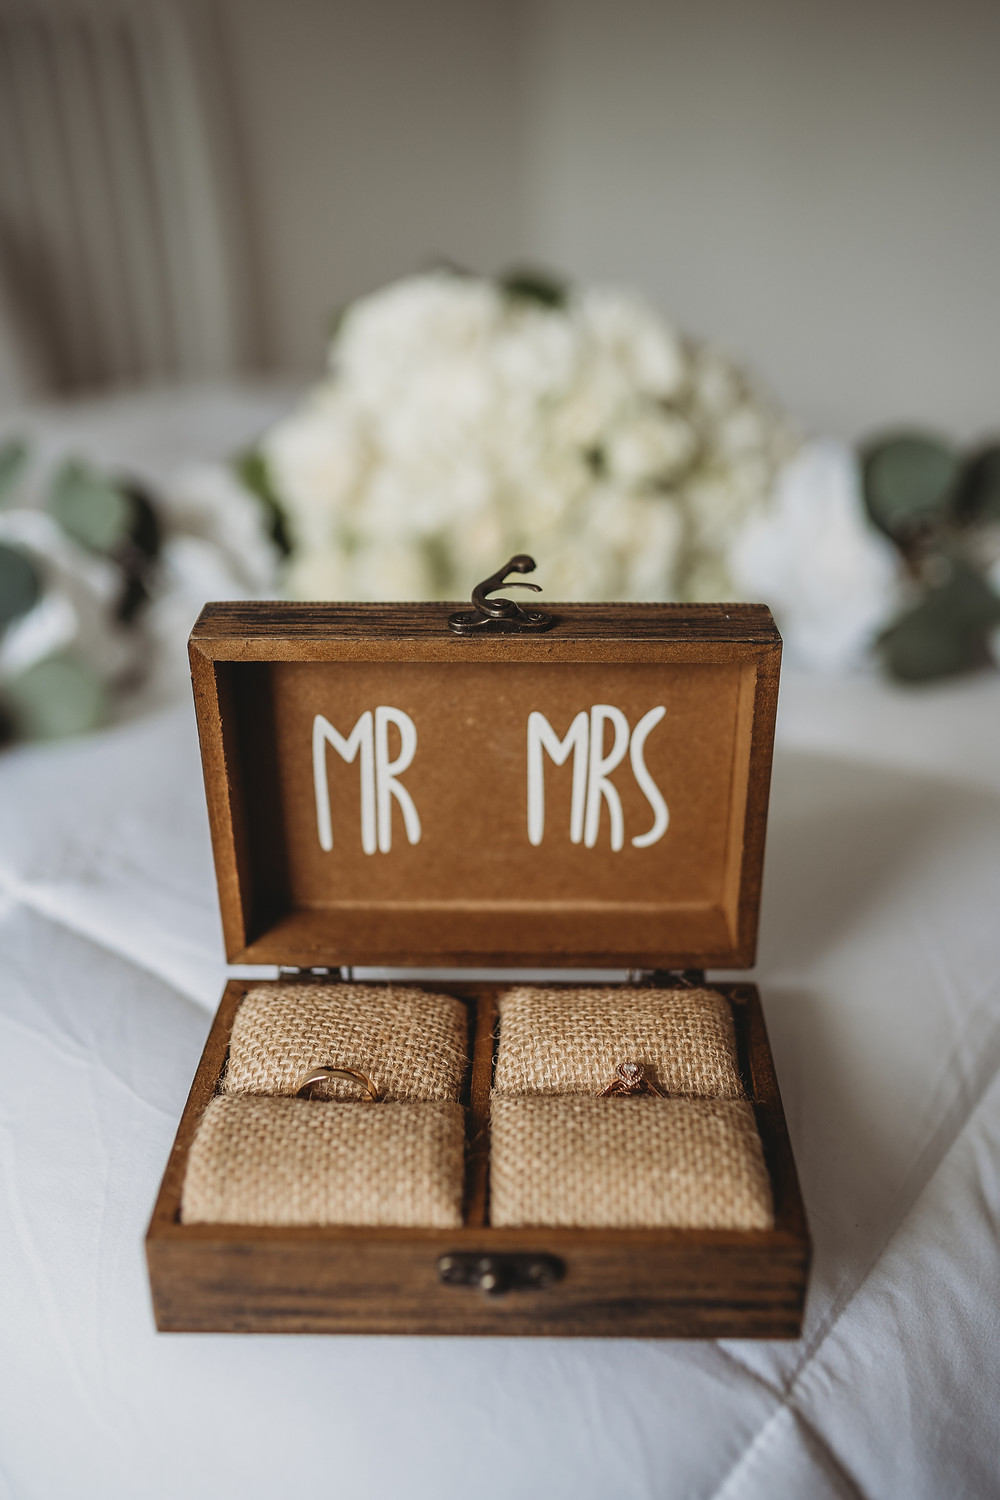 mr and mrs wedding rings in wooden box